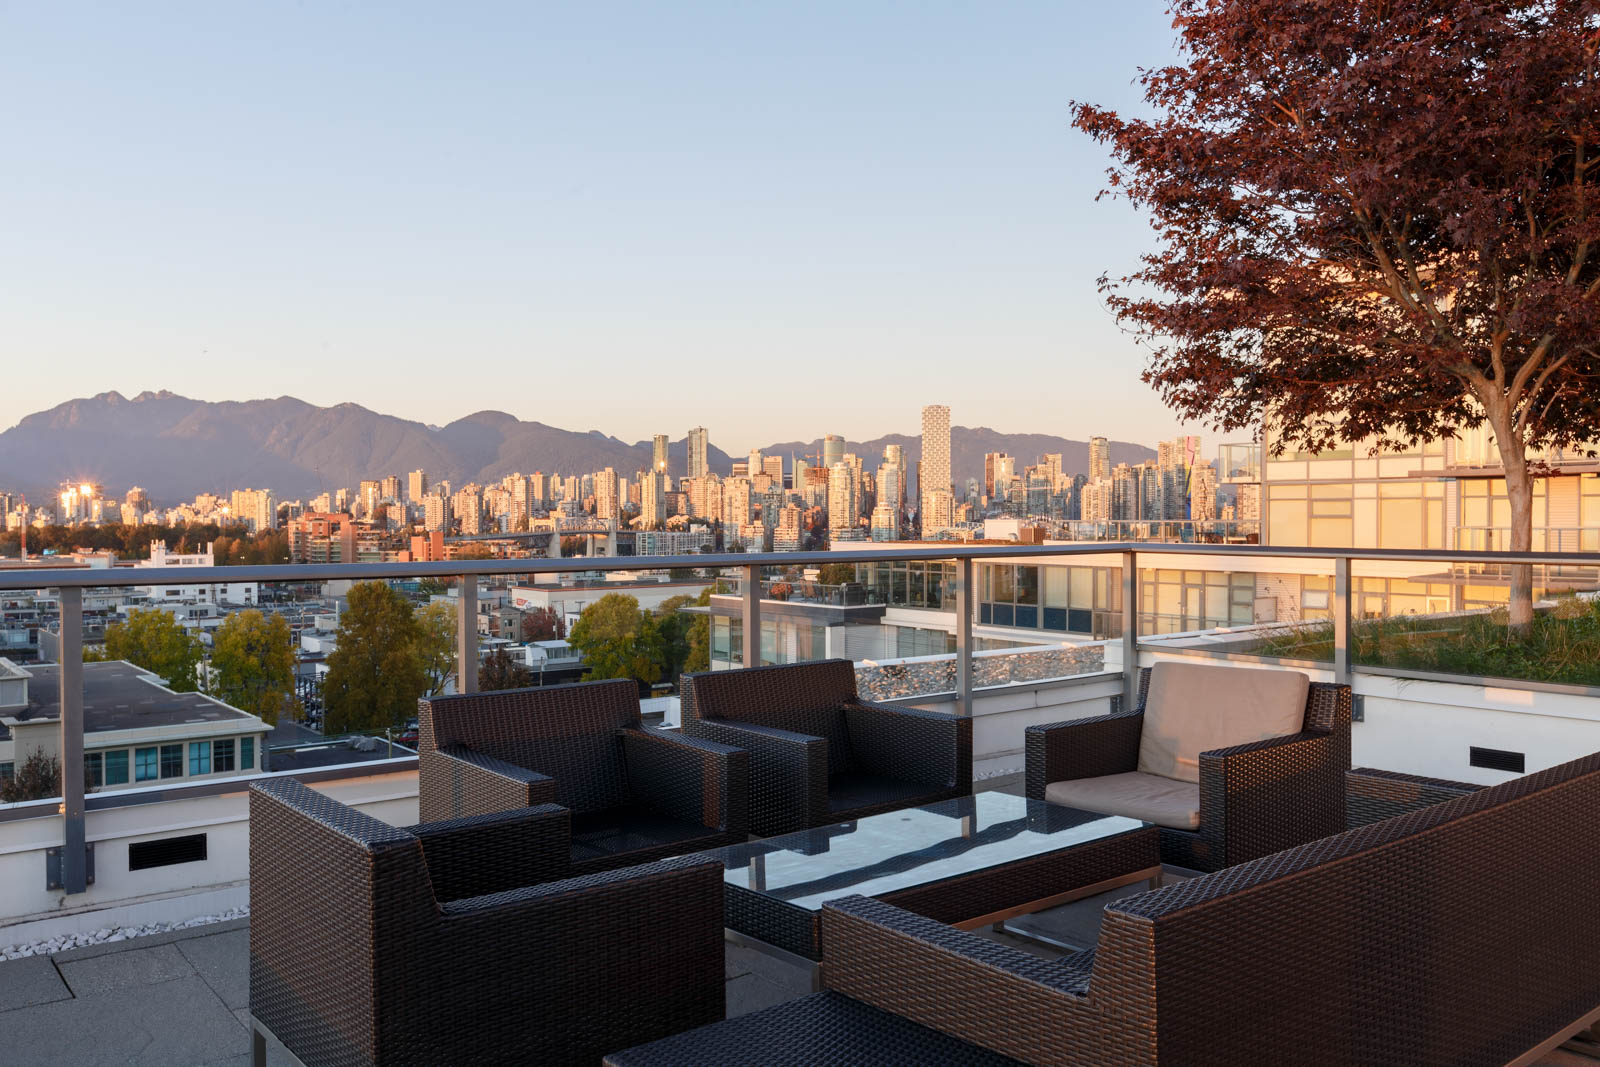 View of Burrard inlet and rooftop patio tables and chairs from Kits360 condo building in Kitsilano and Fairview